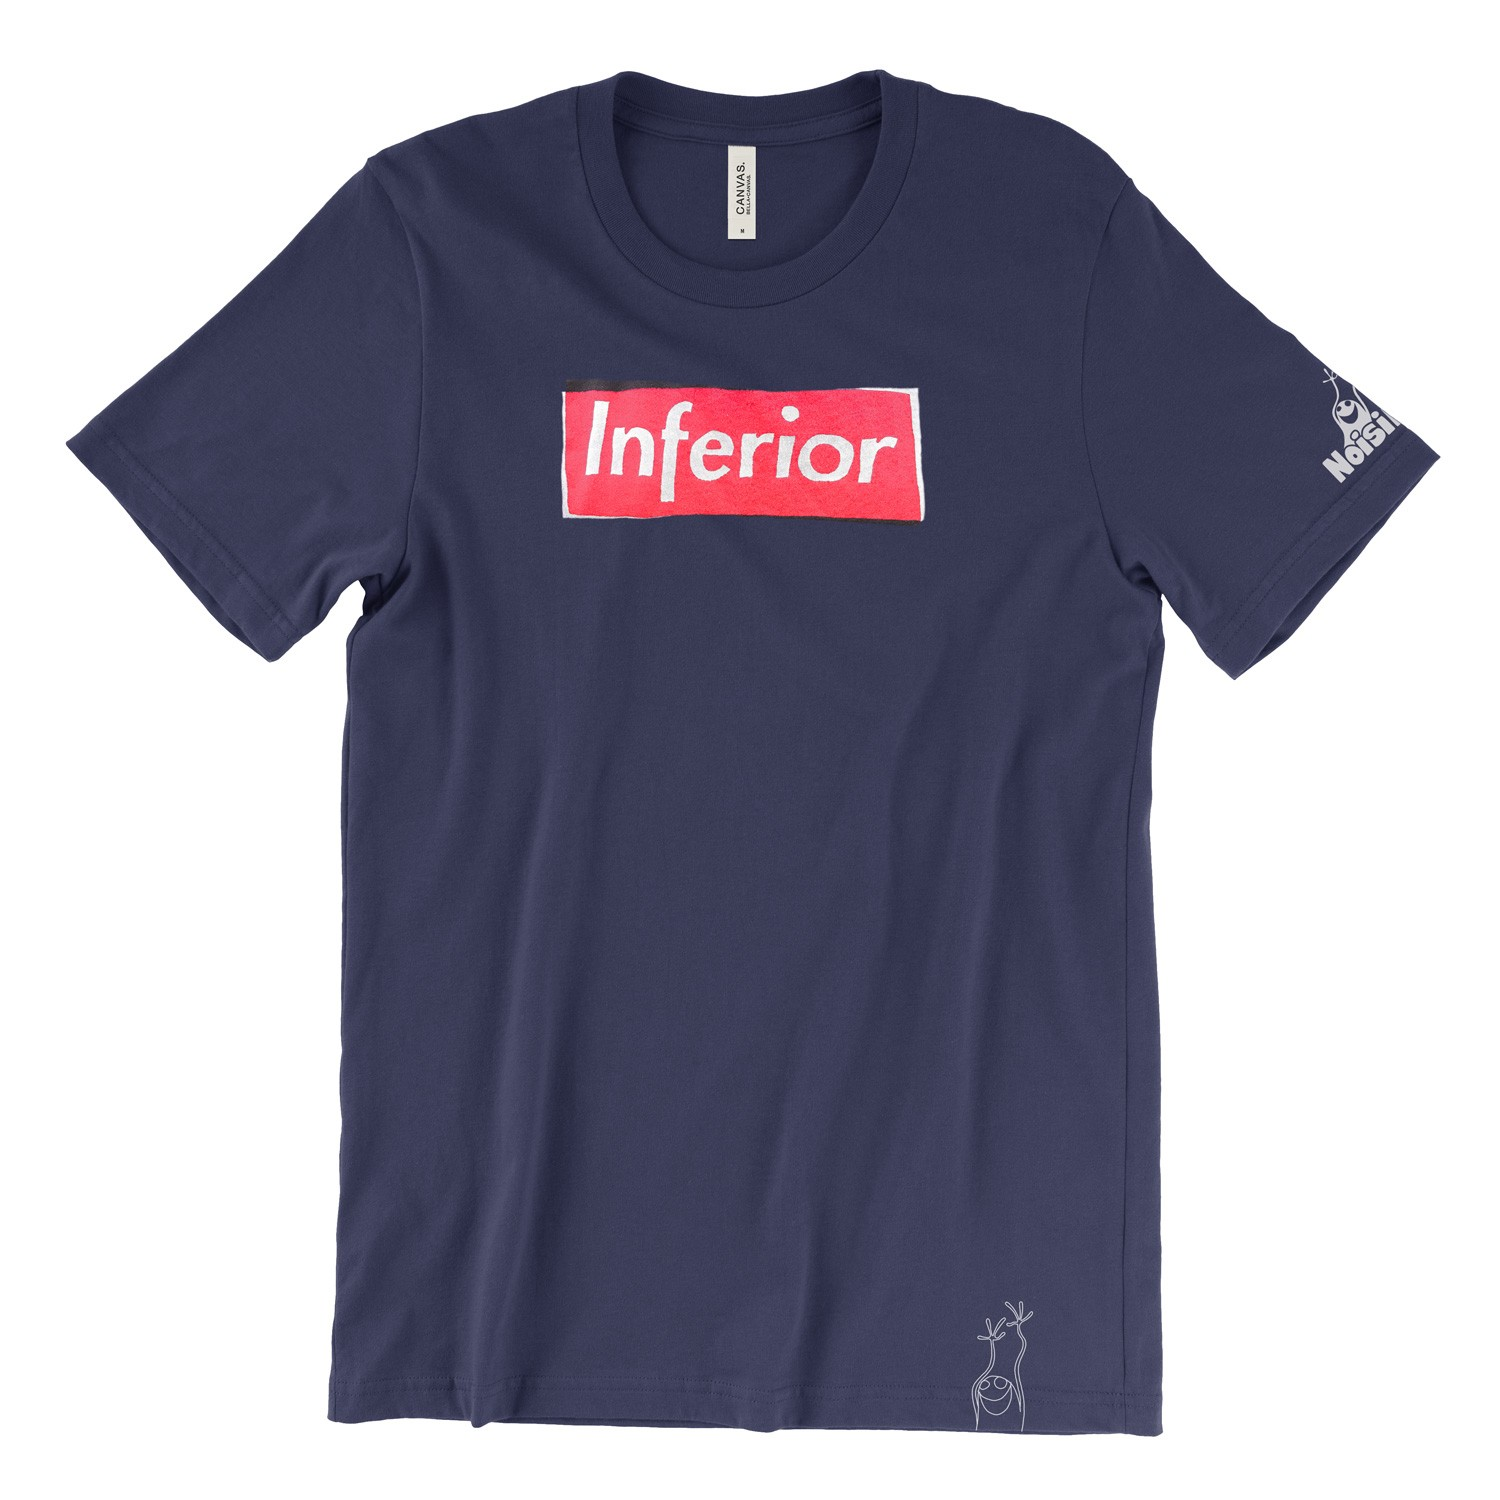 t-shirt inferior blue full